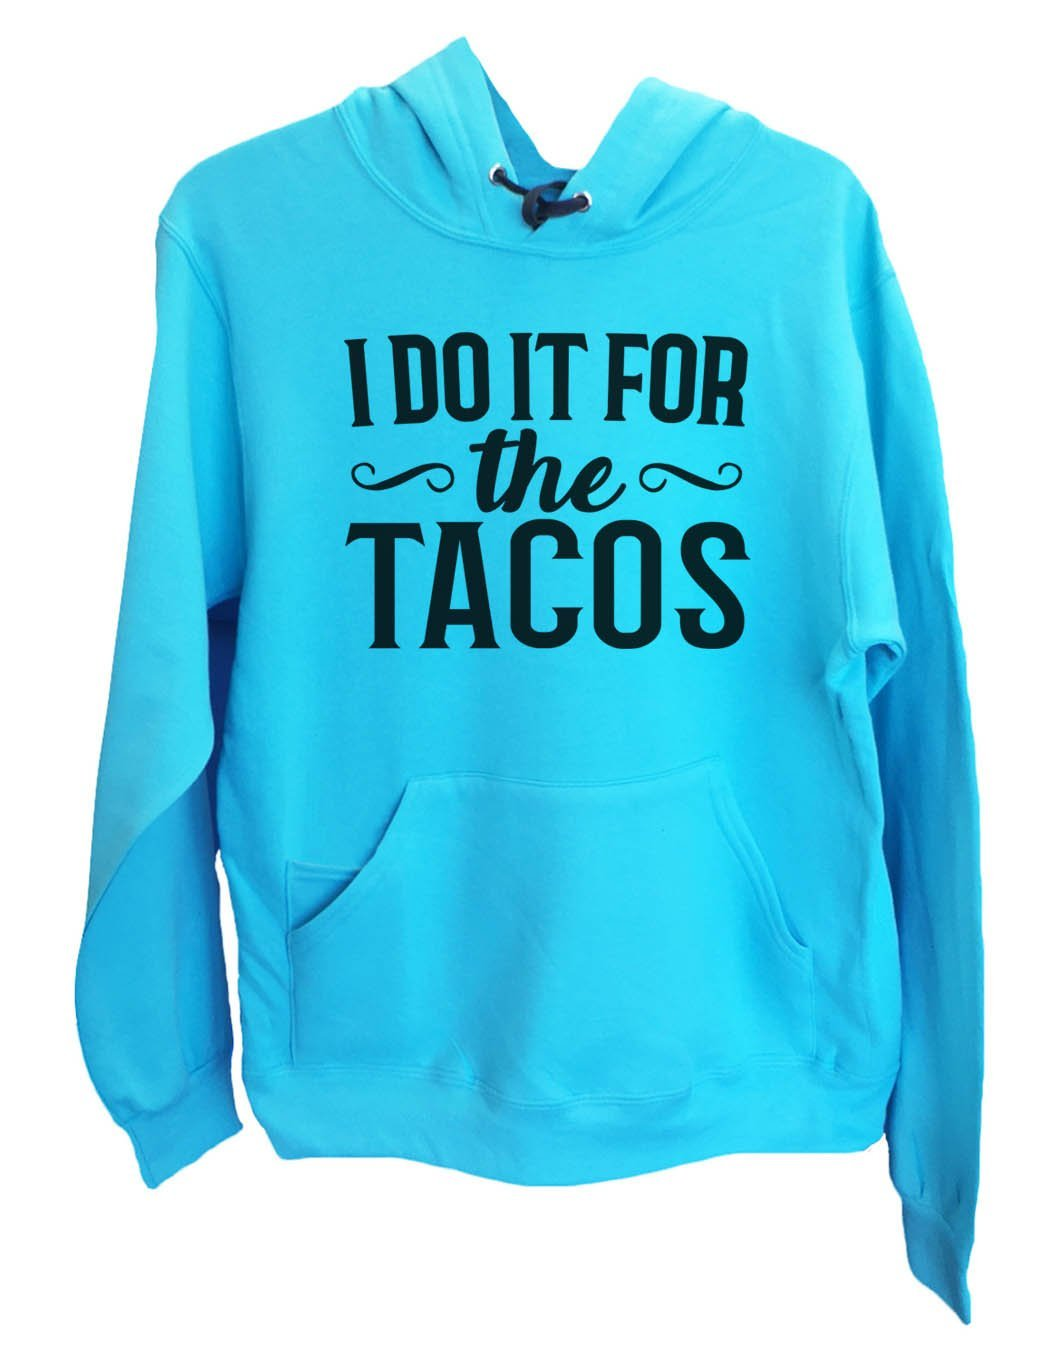 UNISEX HOODIE - I Do It For The Tacos - FUNNY MENS AND WOMENS HOODED SWEATSHIRTS - 2121 Funny Shirt